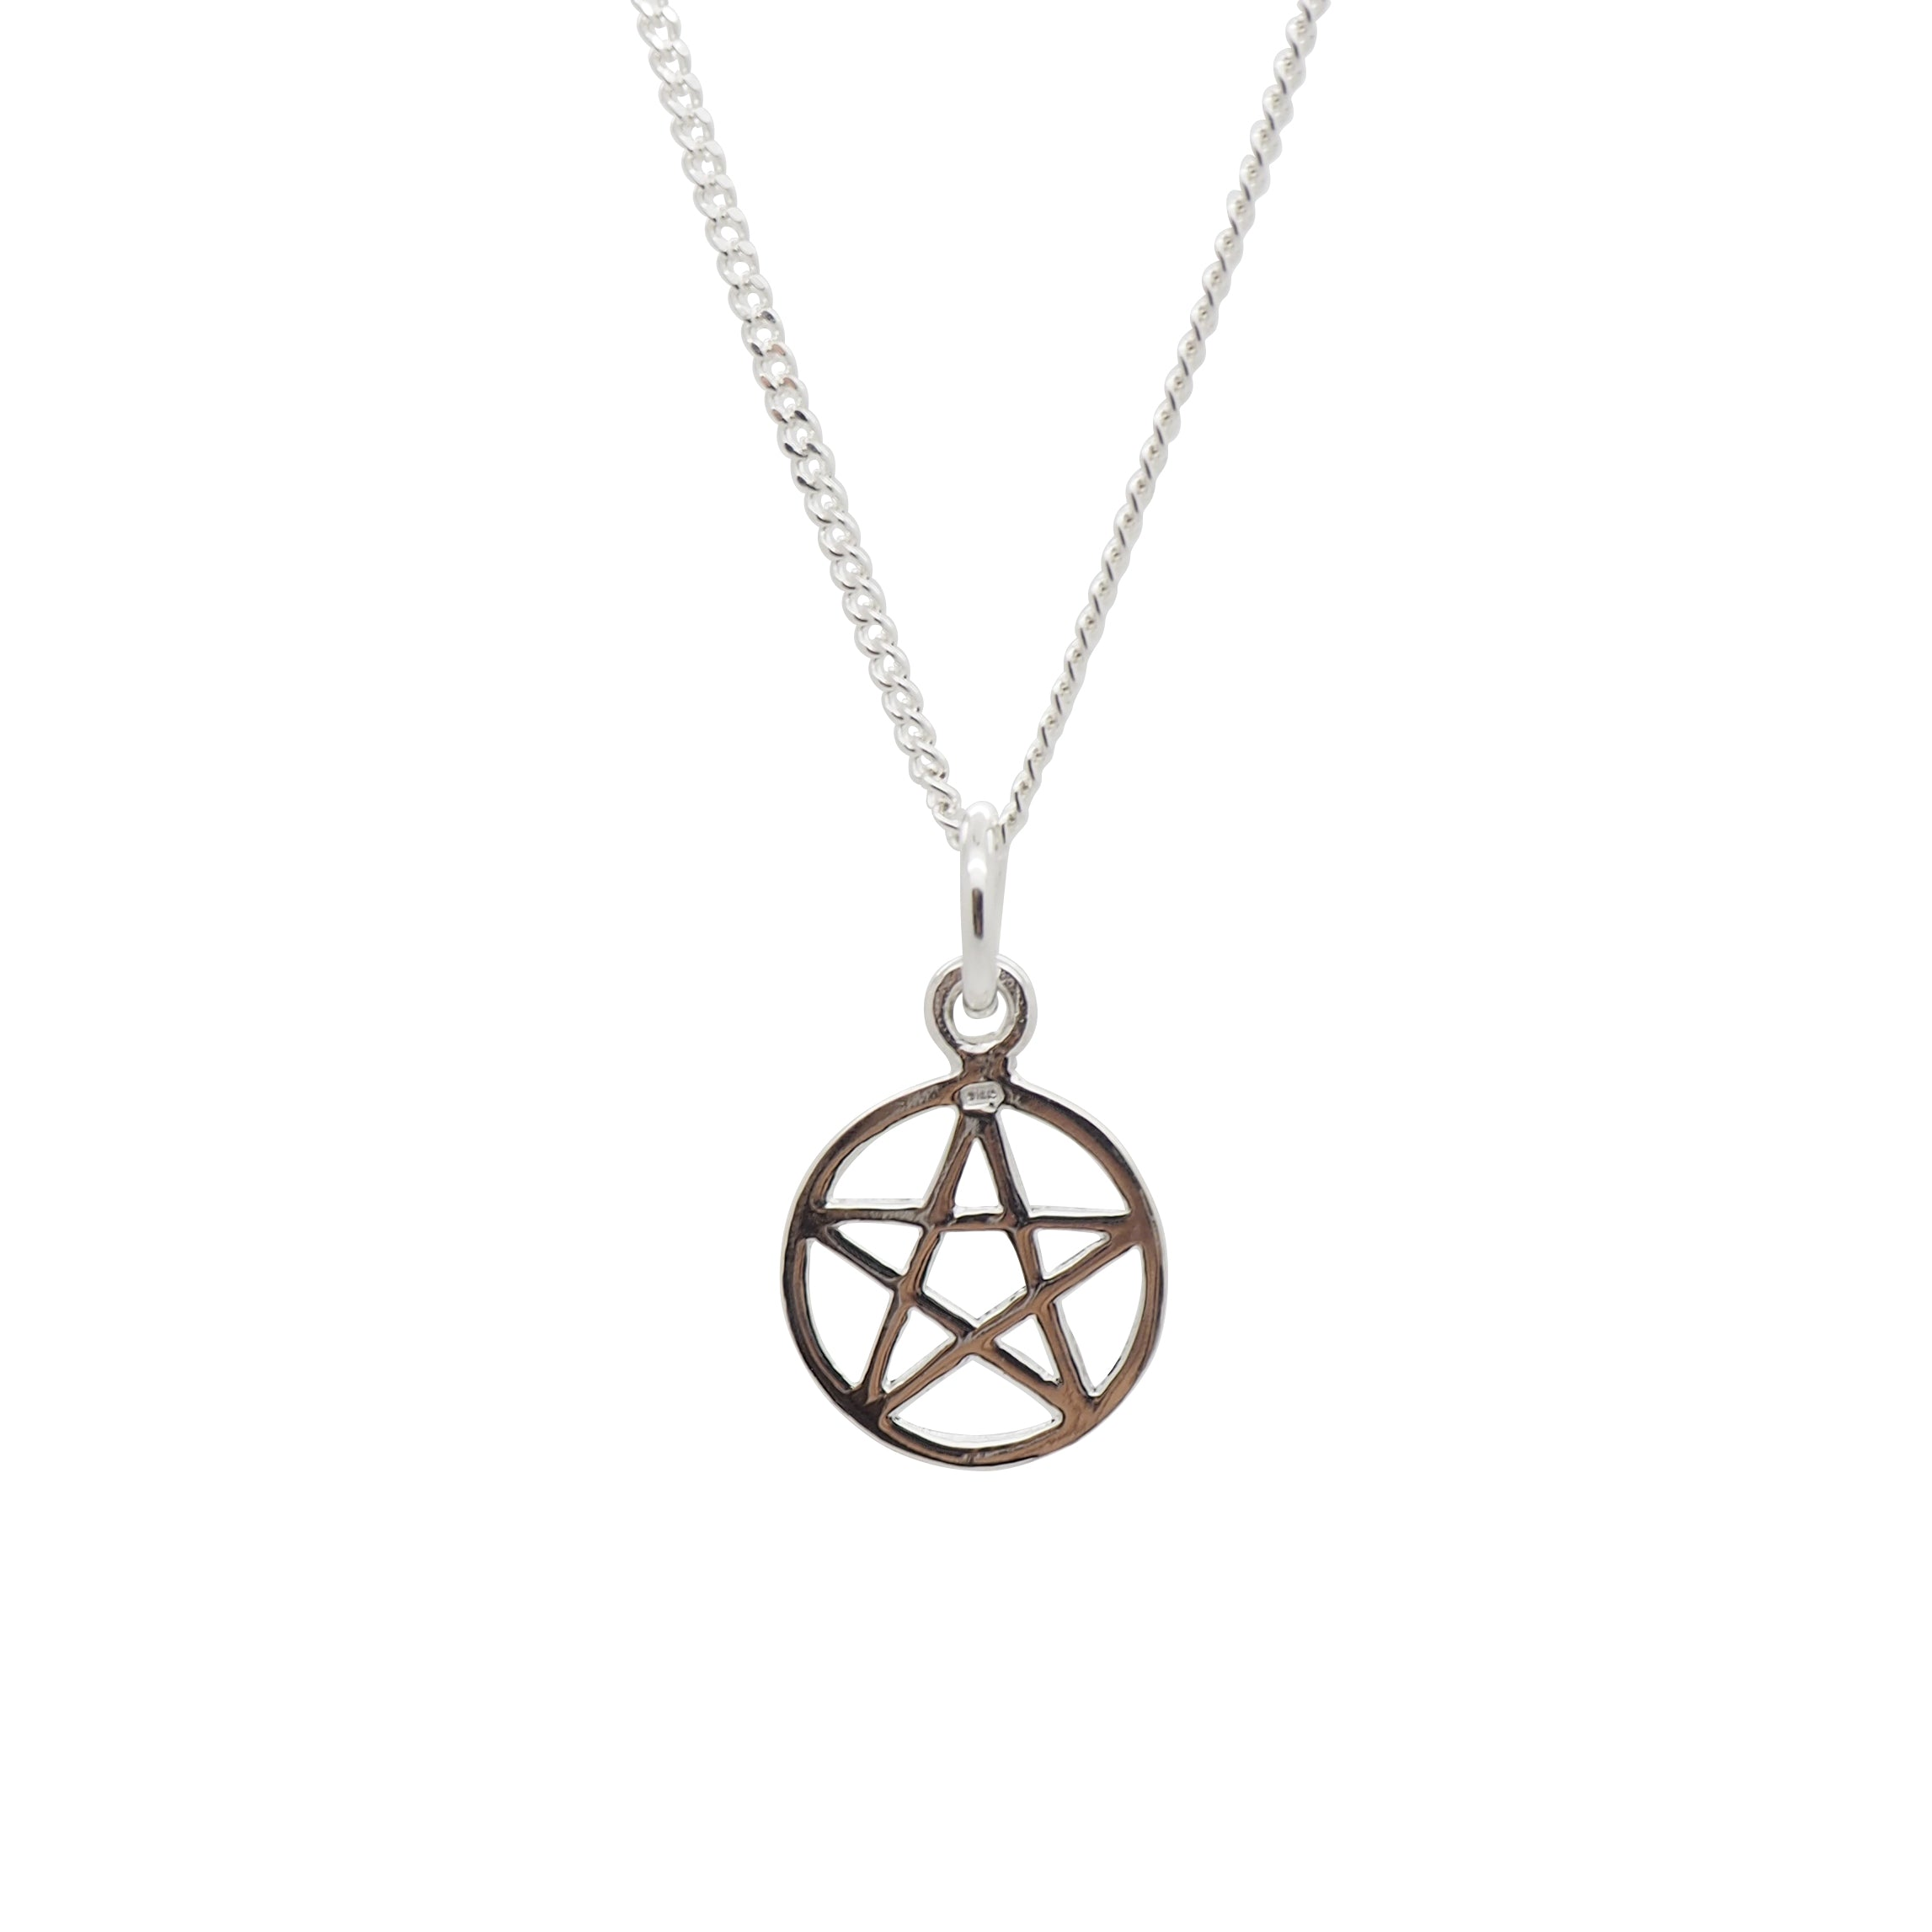 Sterling Silver Dainty Pentacle Necklace